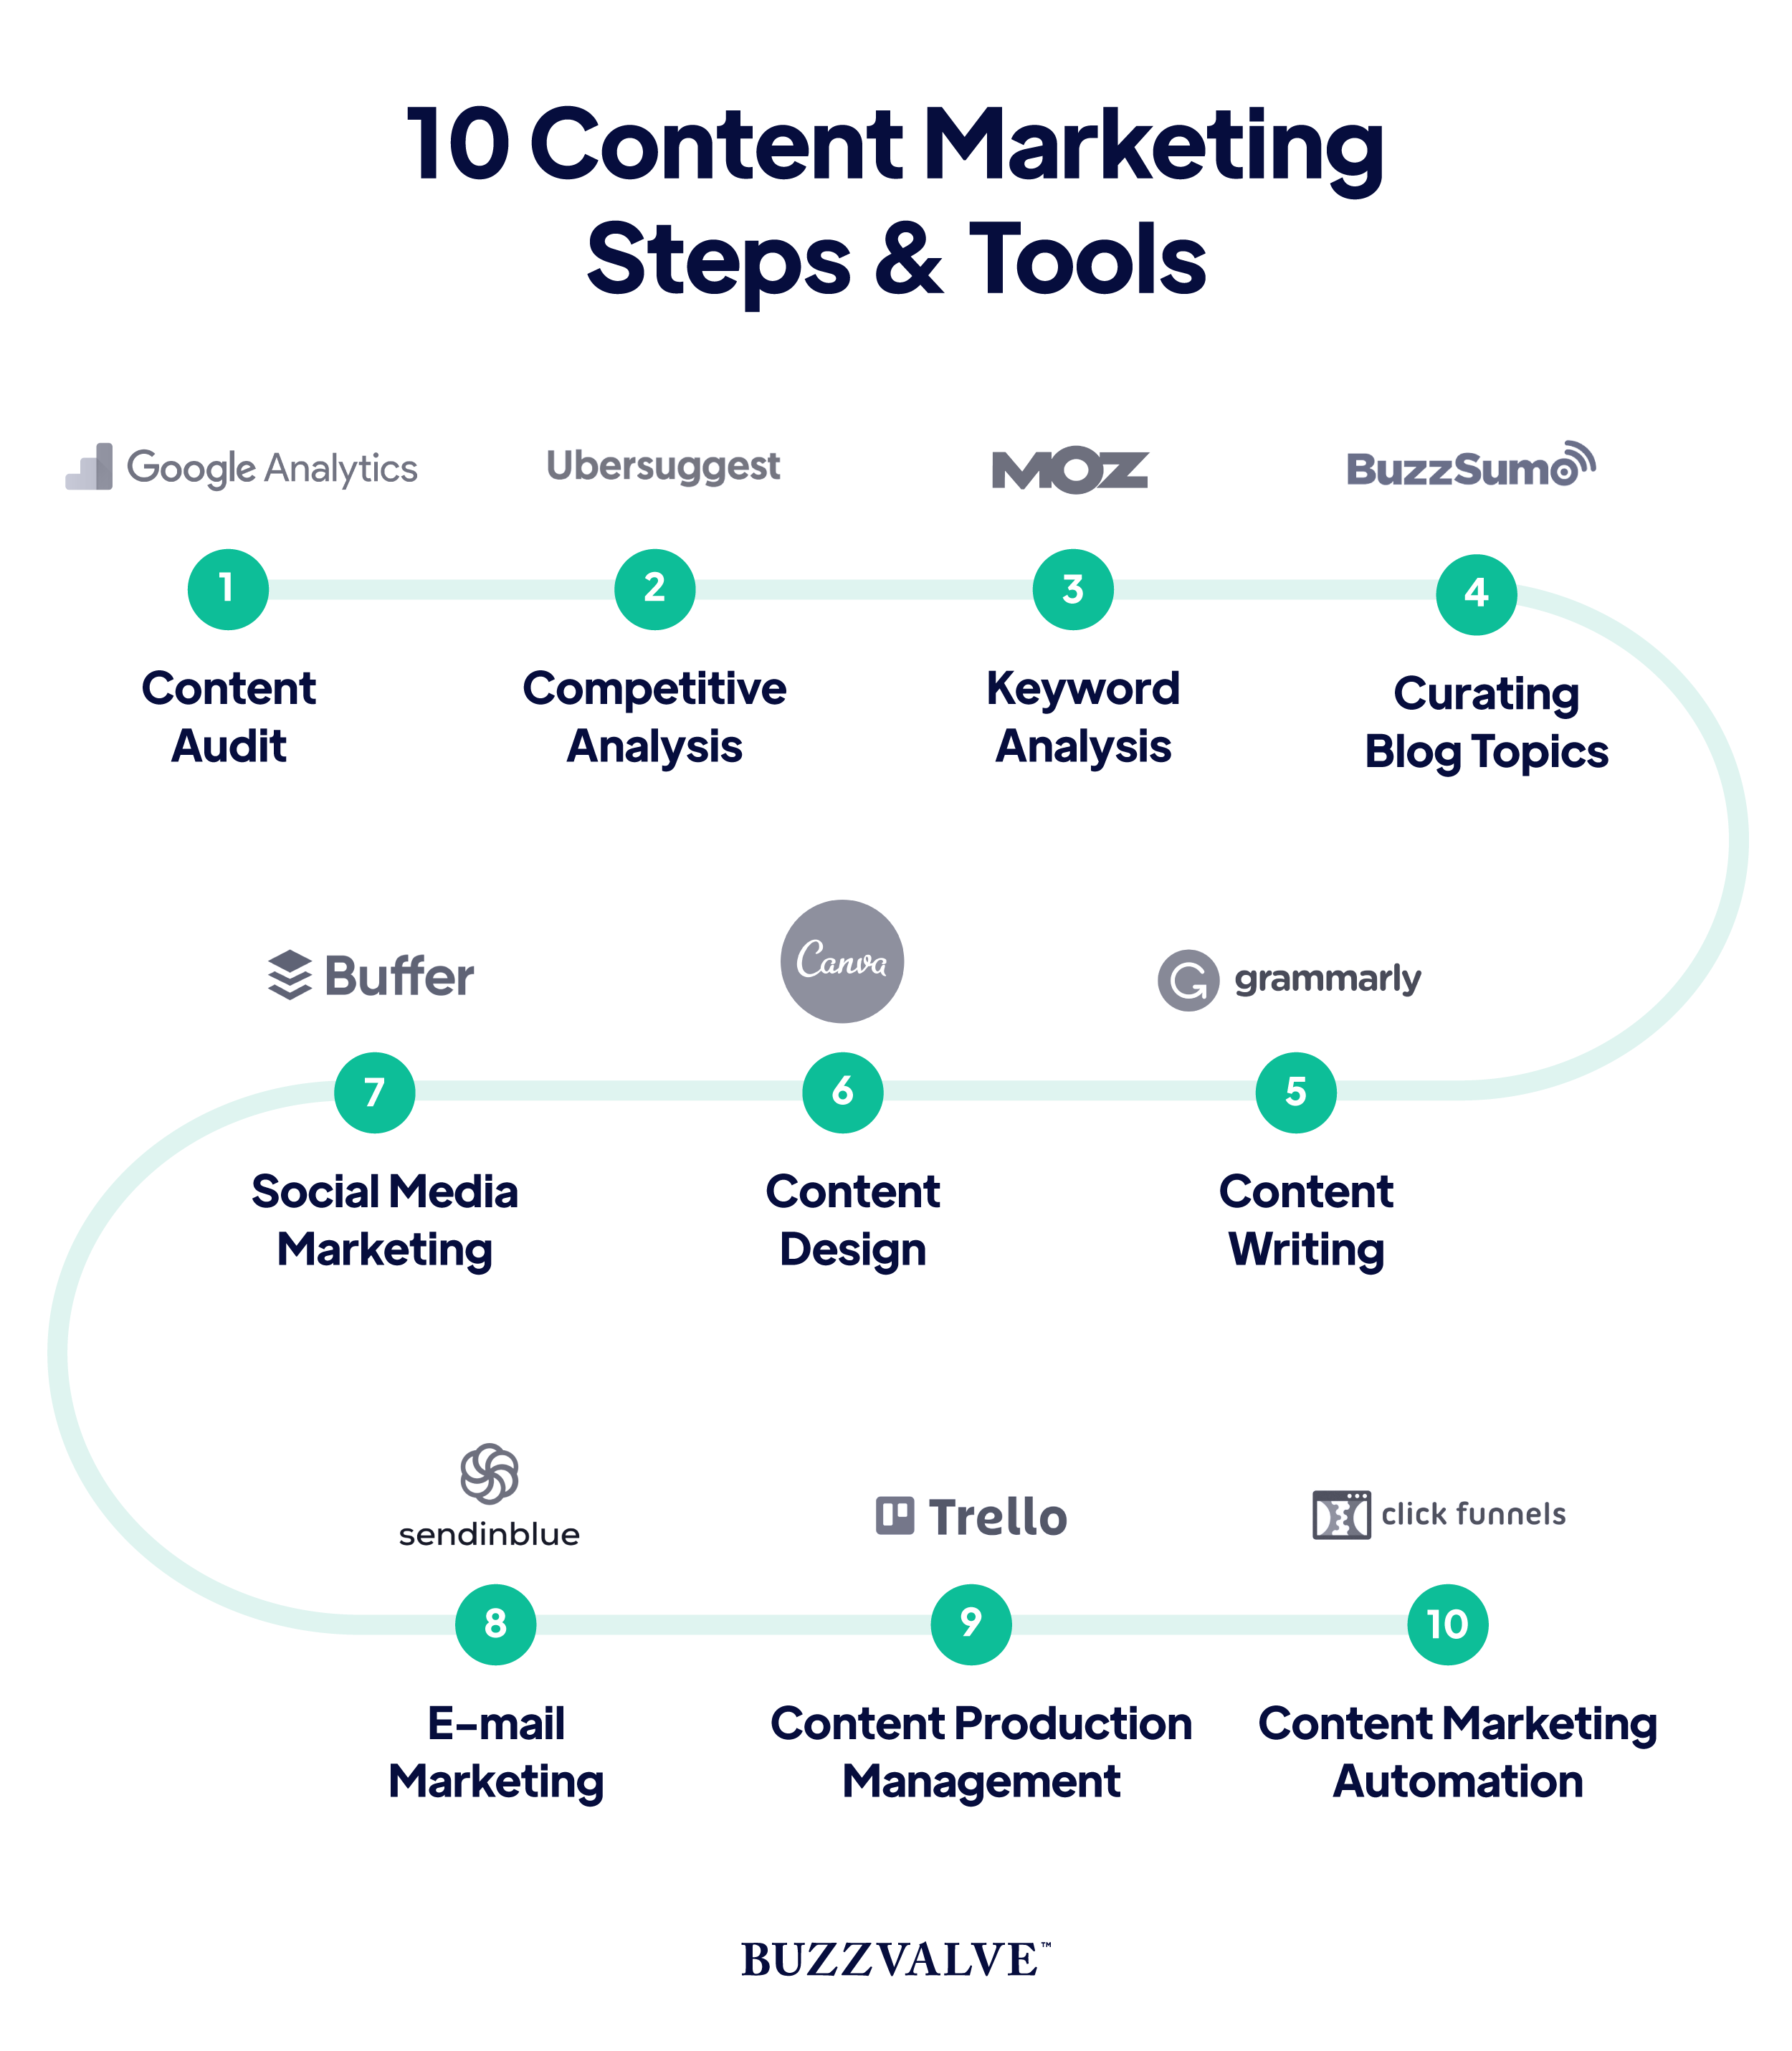 10 content marketing steps and tools